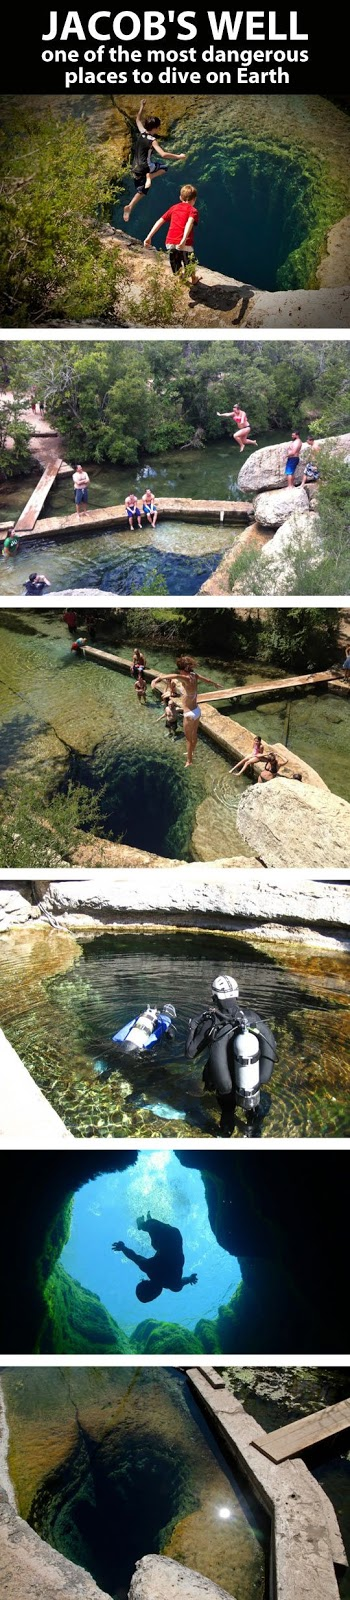 Jacobs Well, Texas! A paradise for divers...